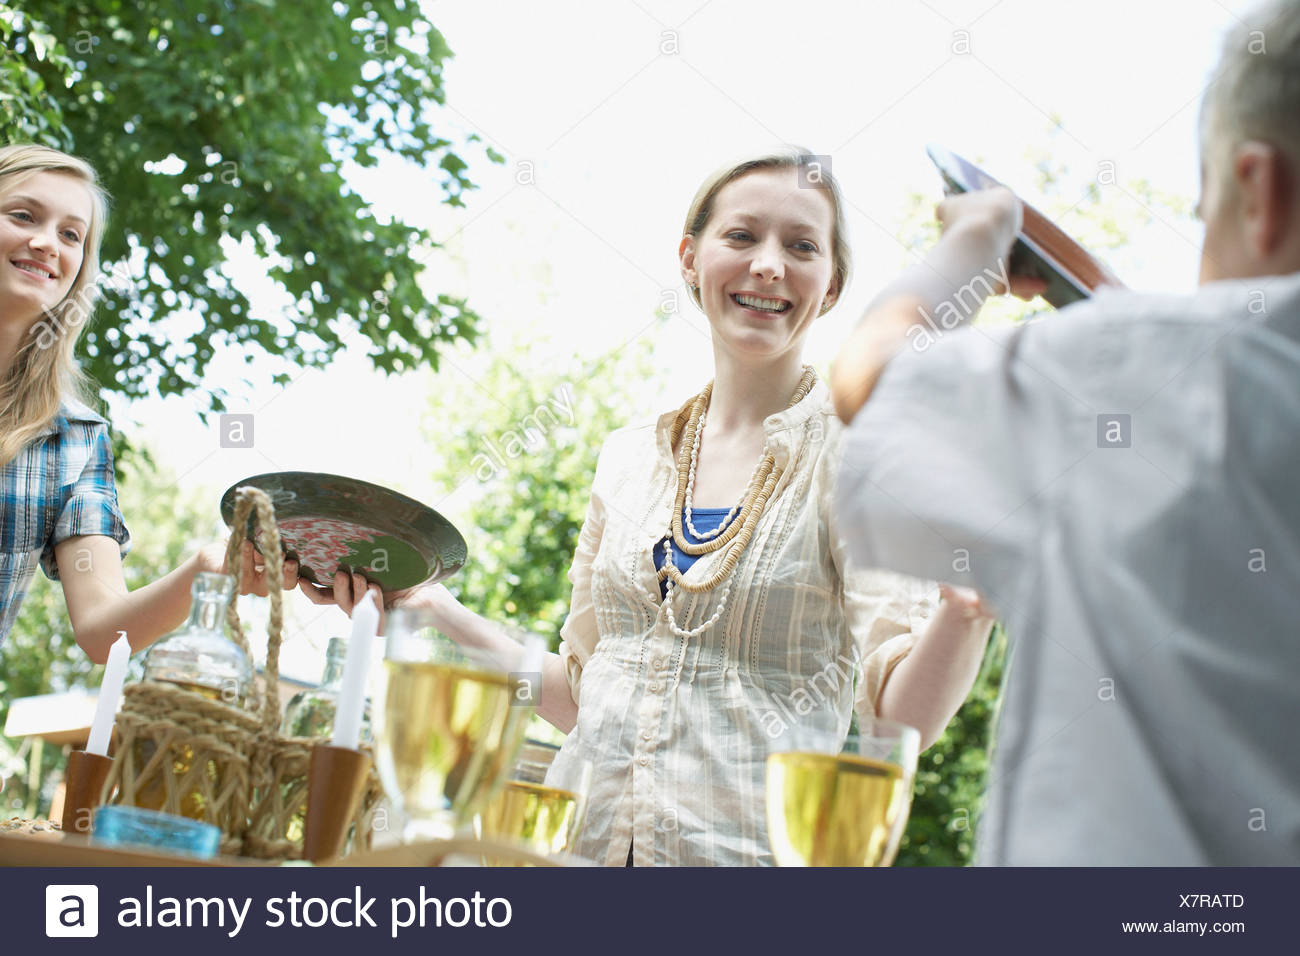 Family enjoying picnic in backyard - Stock Image